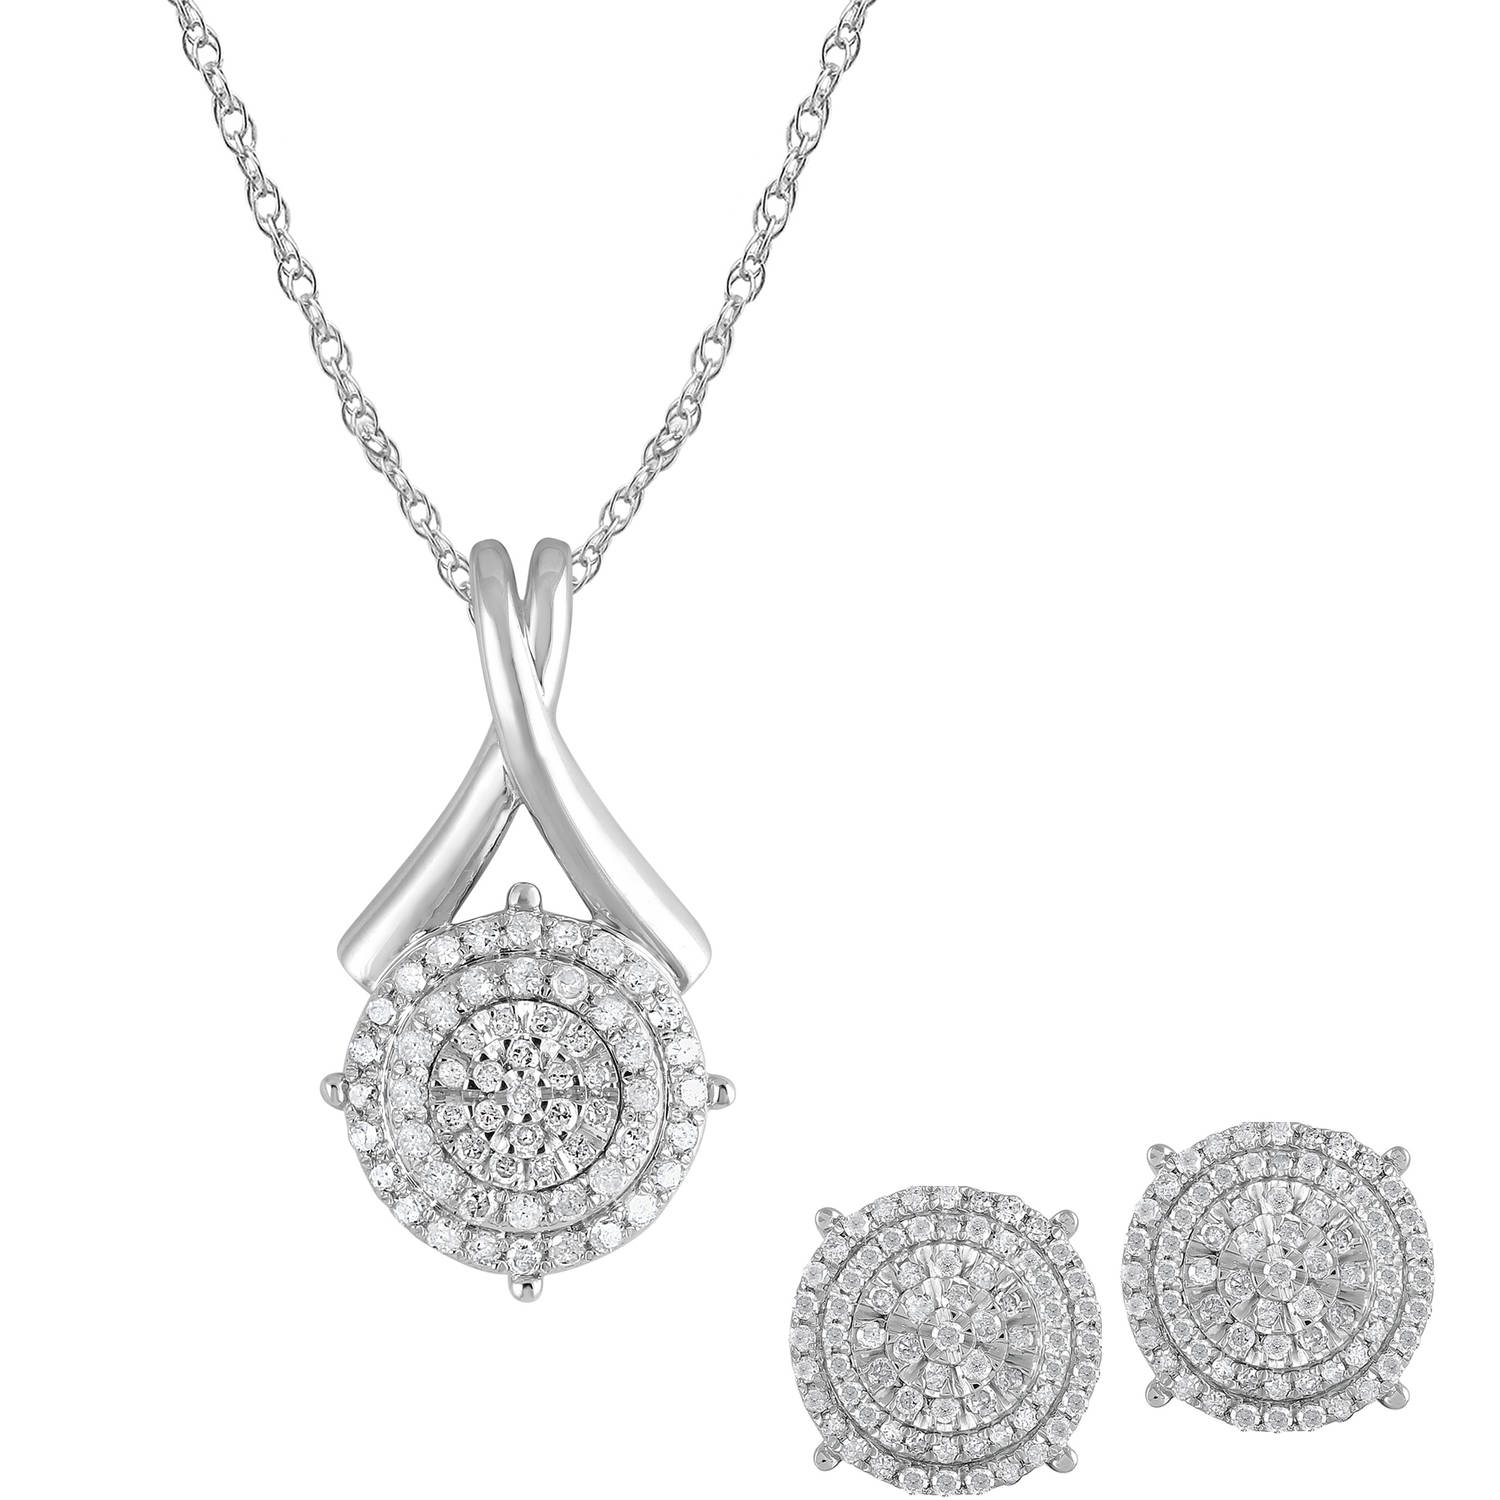 1 Carat T W Diamond Sterling Silver Pendant And Earrings Three Piece Box Set